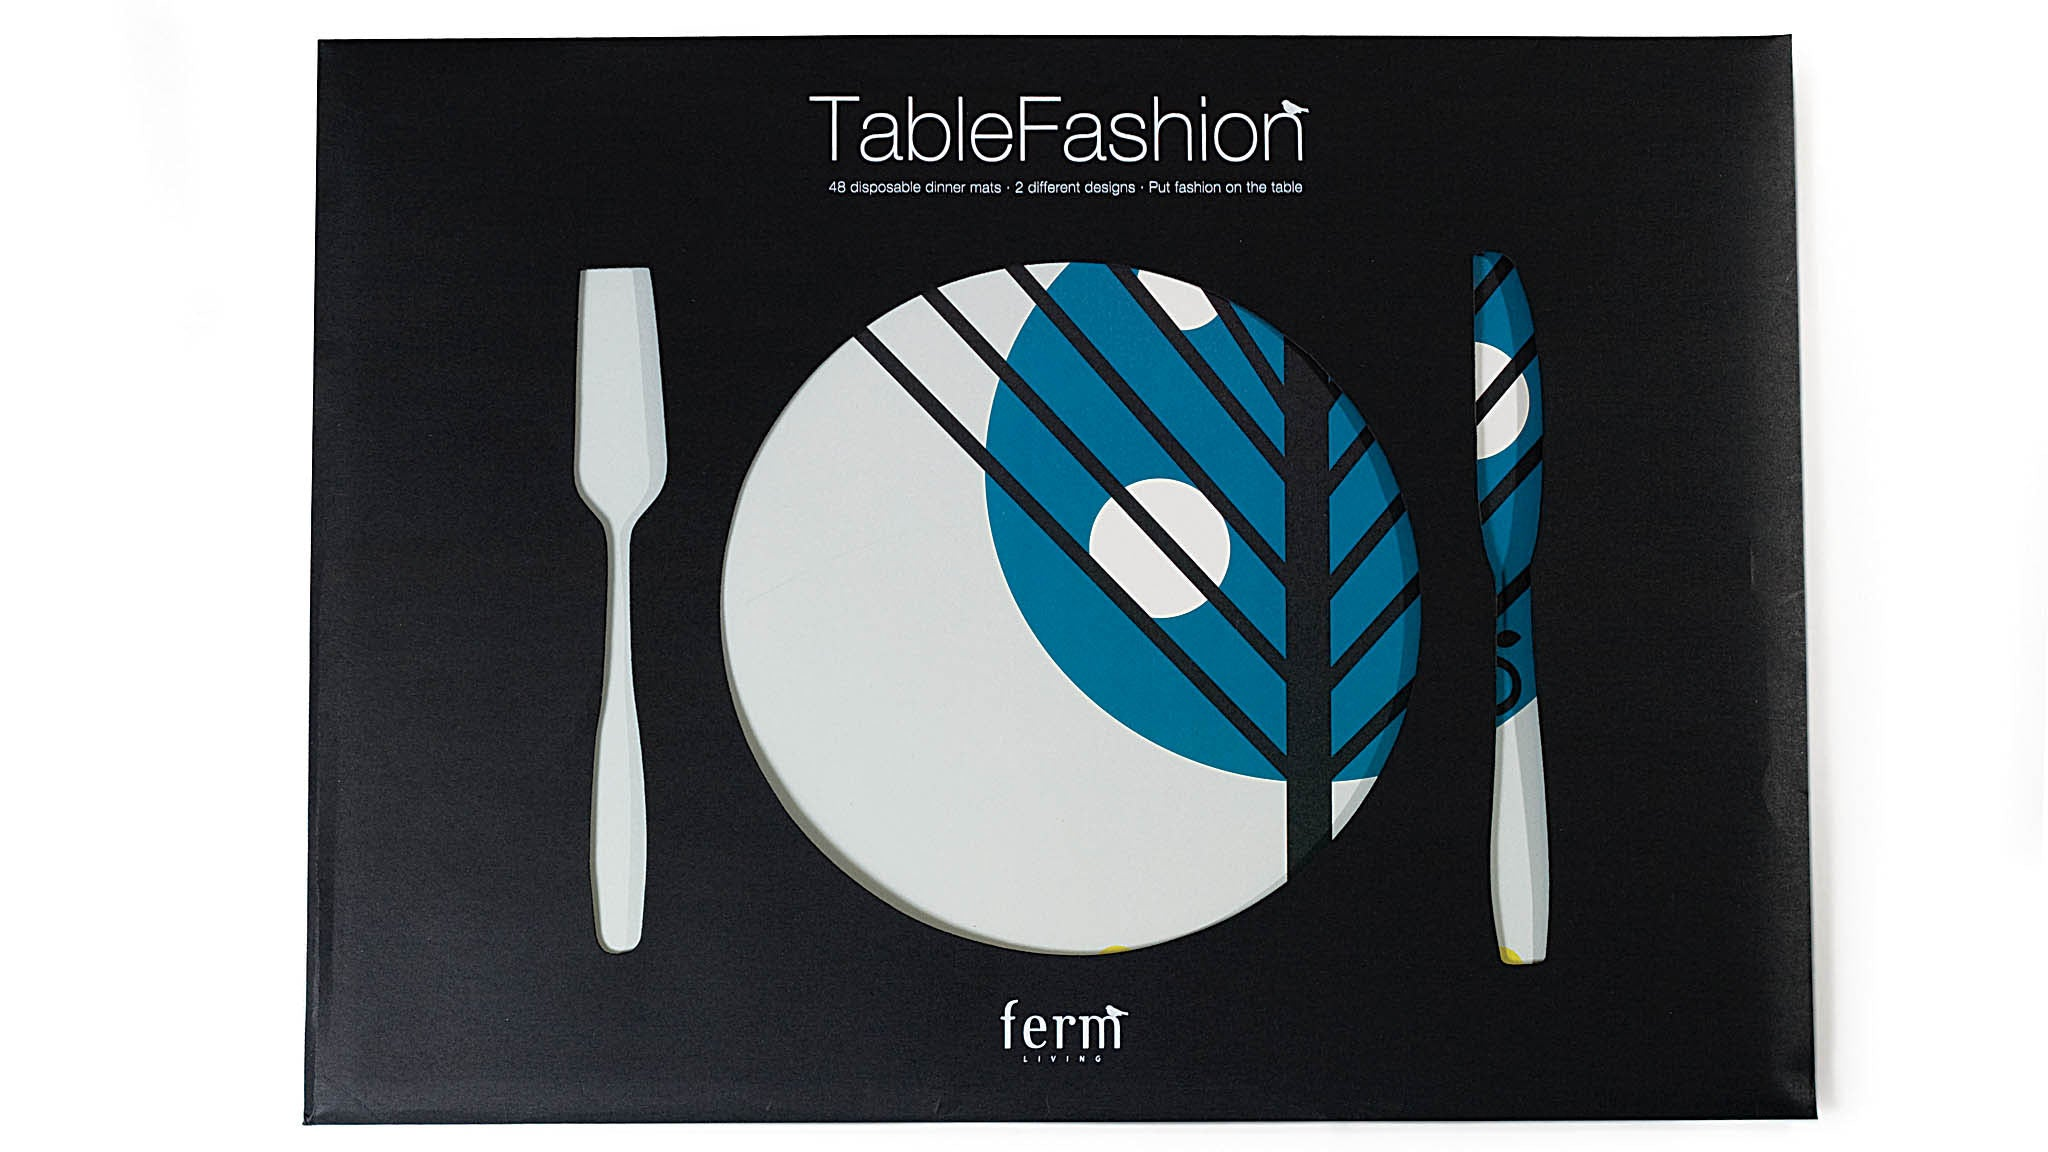 TableFashion: Put fashion on the table with beautiful, graphic and disposable dinner mats. Not only are these paper sheets super practical but they also turn any table into a graphic masterpiece in no time. One set contains 48 sheets, 24 of each design.